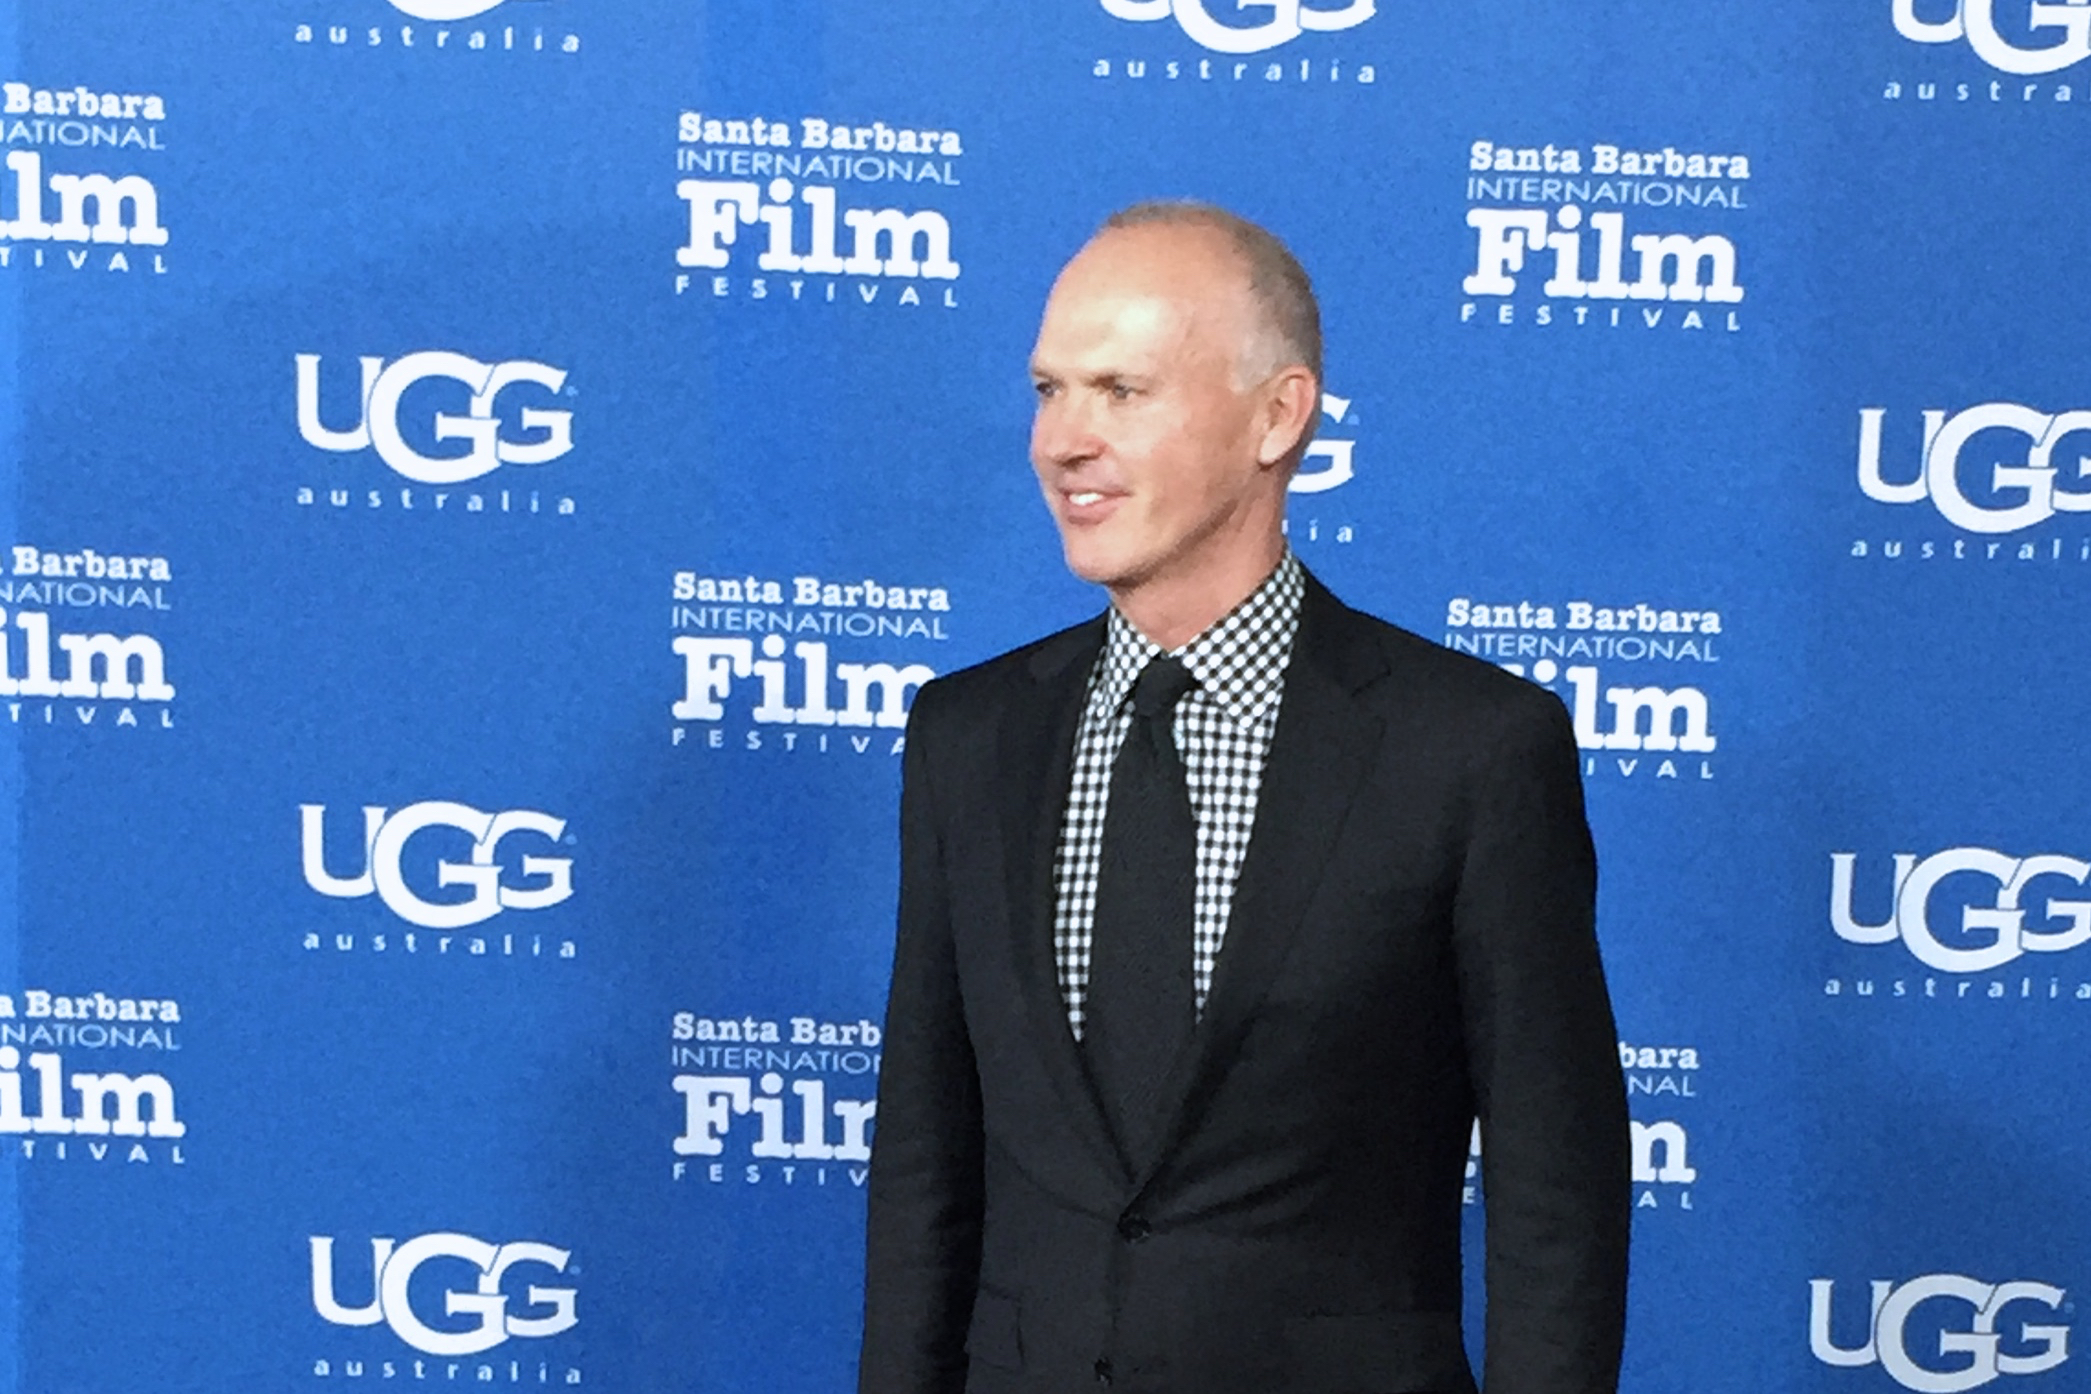 2015 Santa Barbara International Film Festival Modern Master Award honoring Michael Keaton Image